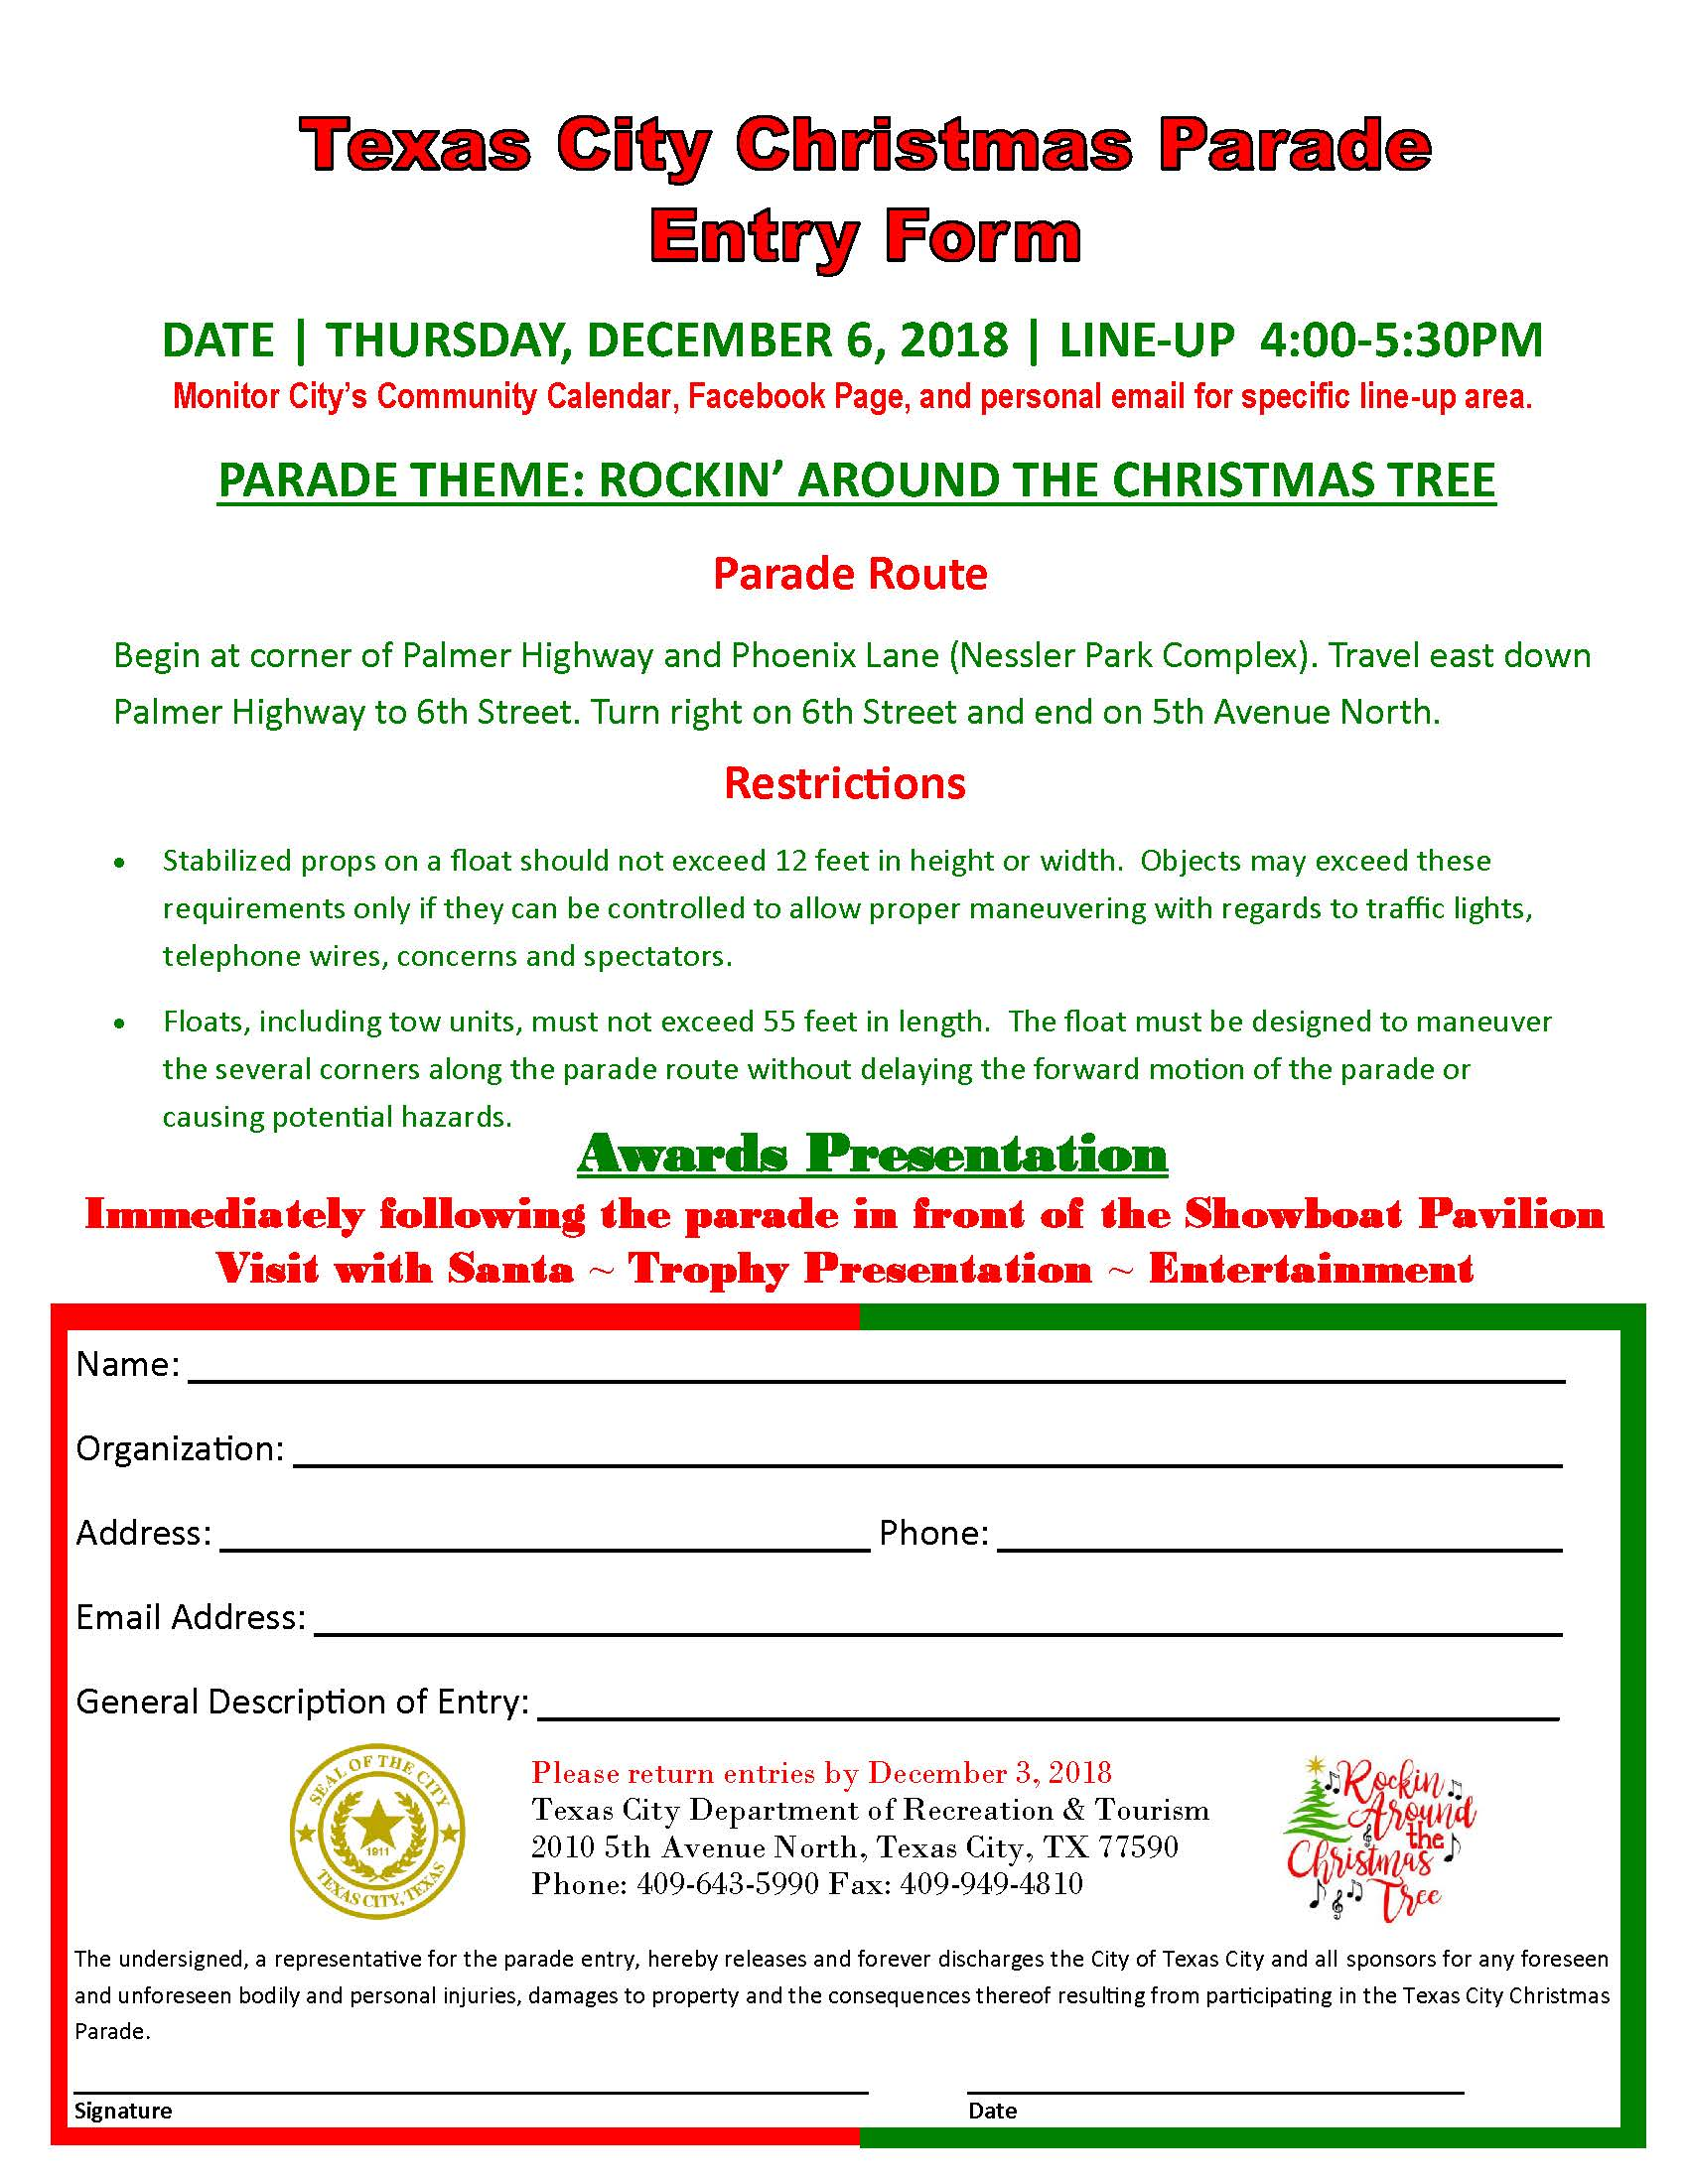 Texas City Christmas Parade | Texas City Community Calendar